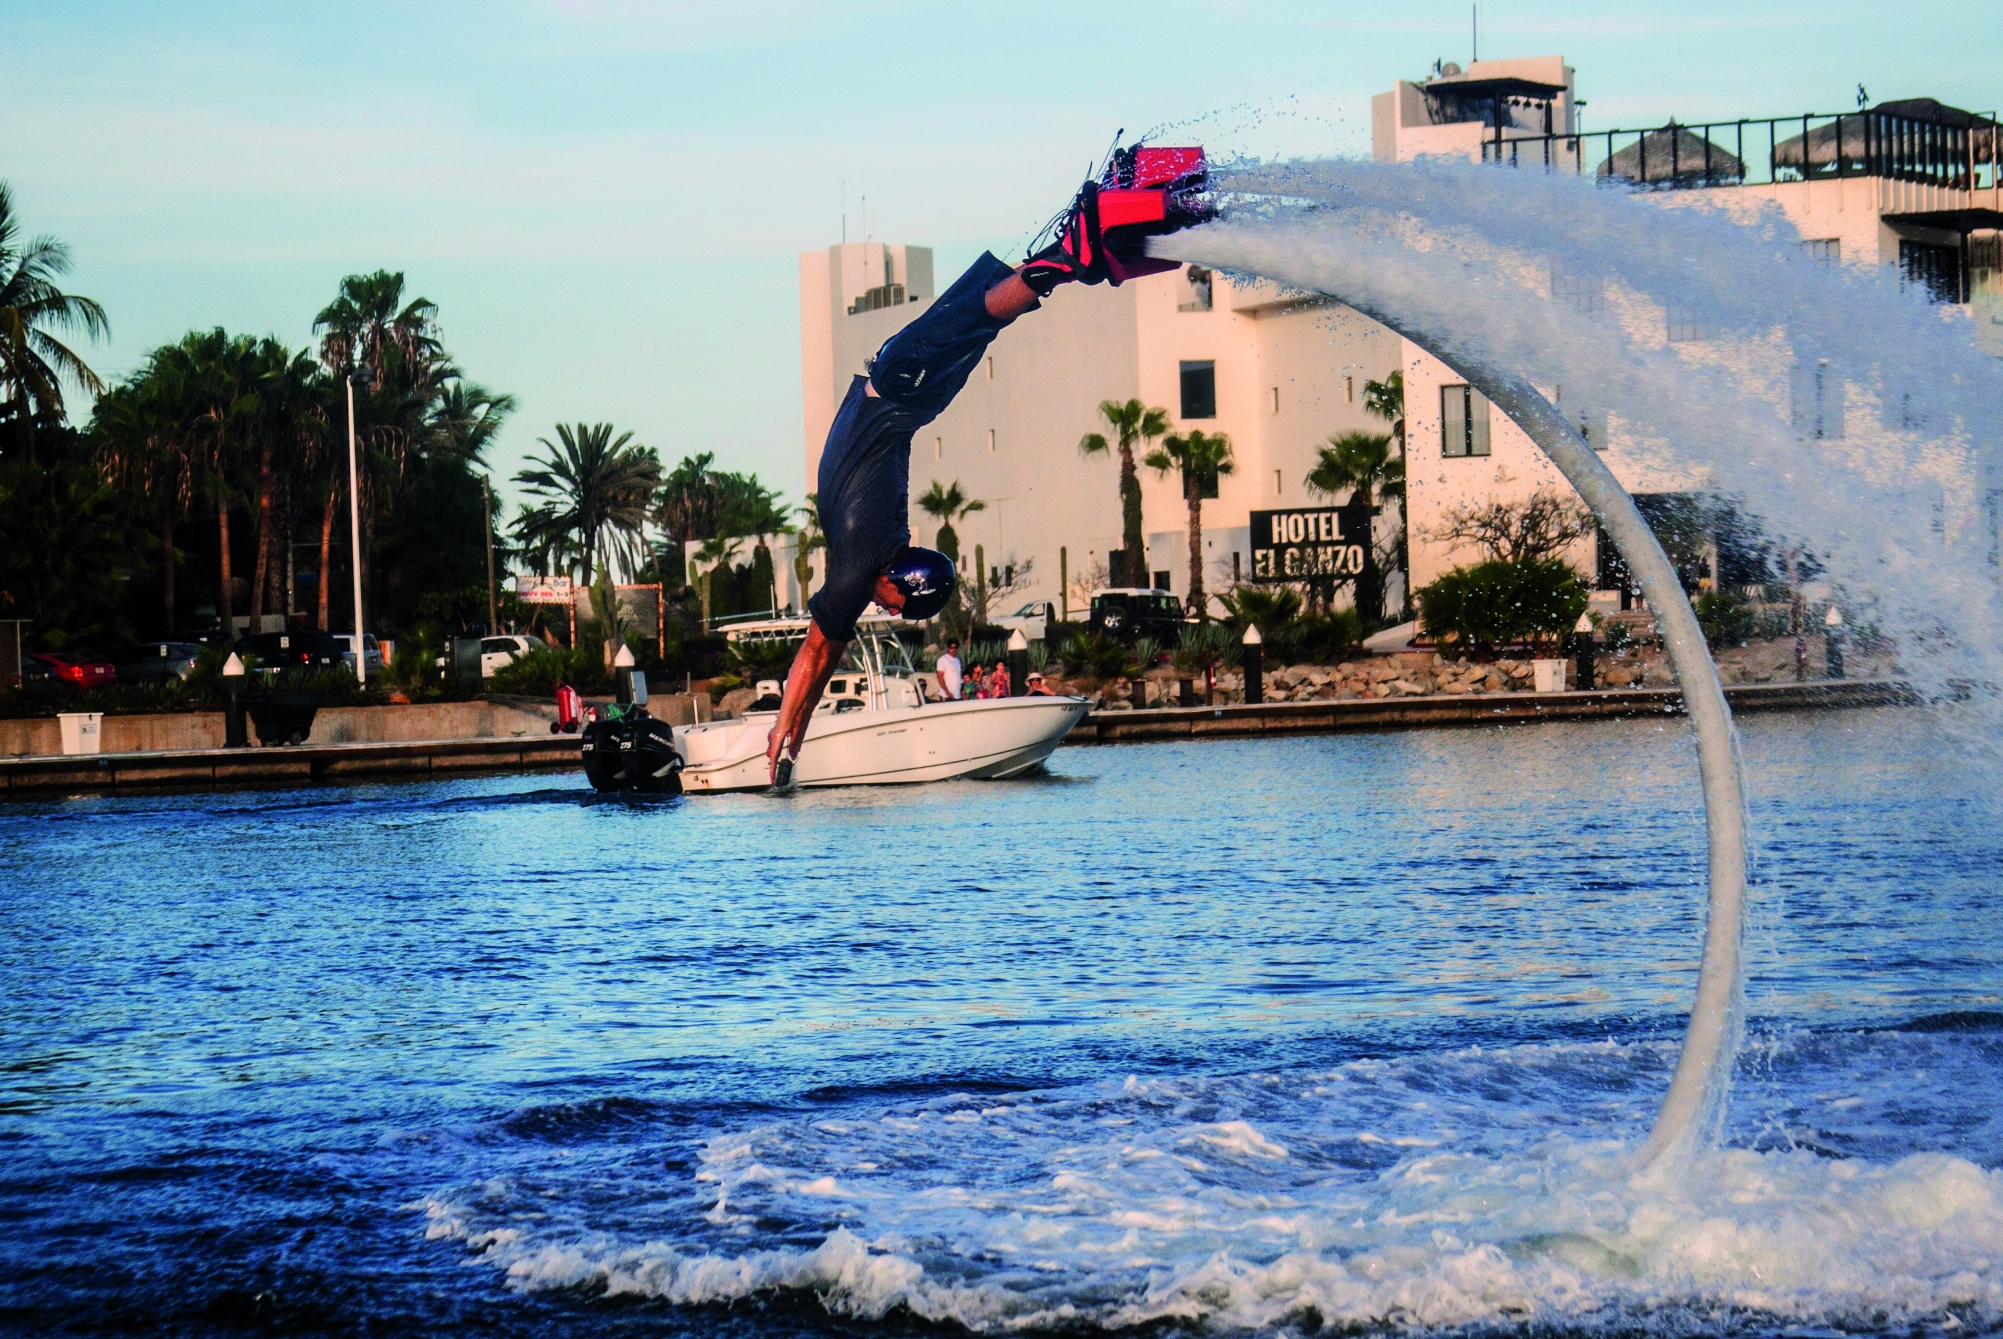 Back dives on a FlyBoard